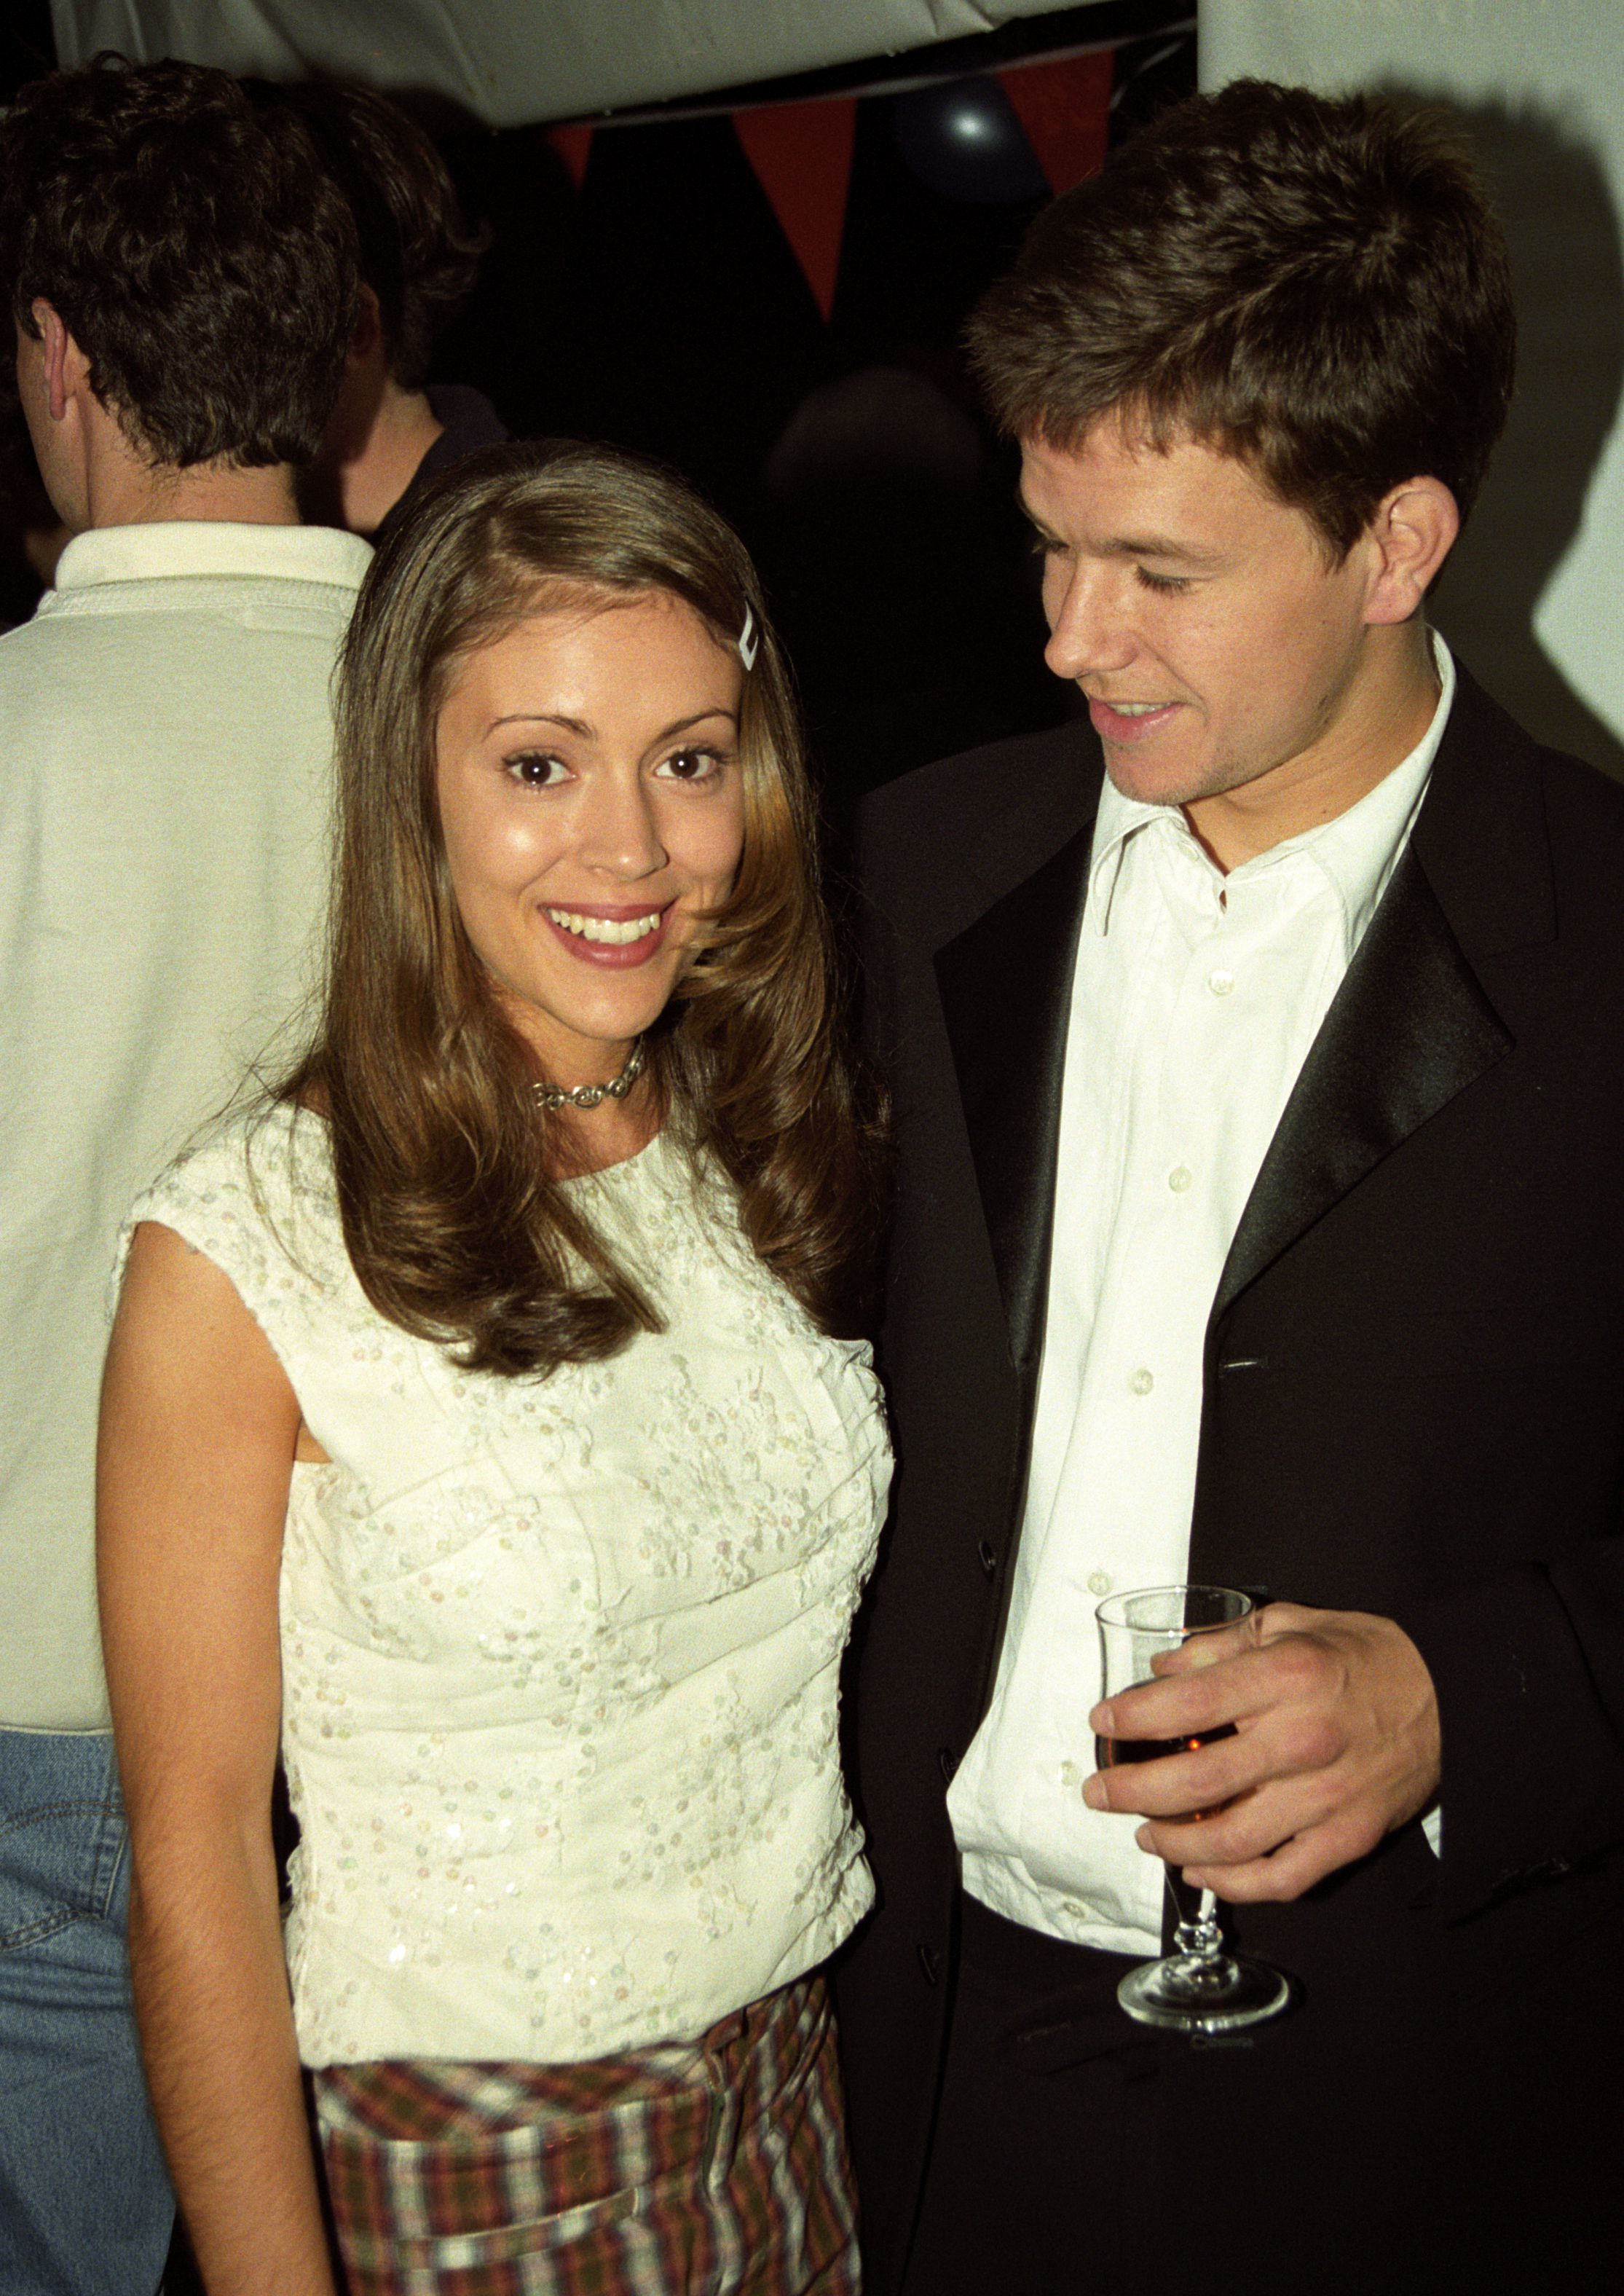 """Alyssa Milano and Mark Wahlberg attend the premiere of """"Fear"""" at the Cannes Film Festival in France on May 9, 1996."""